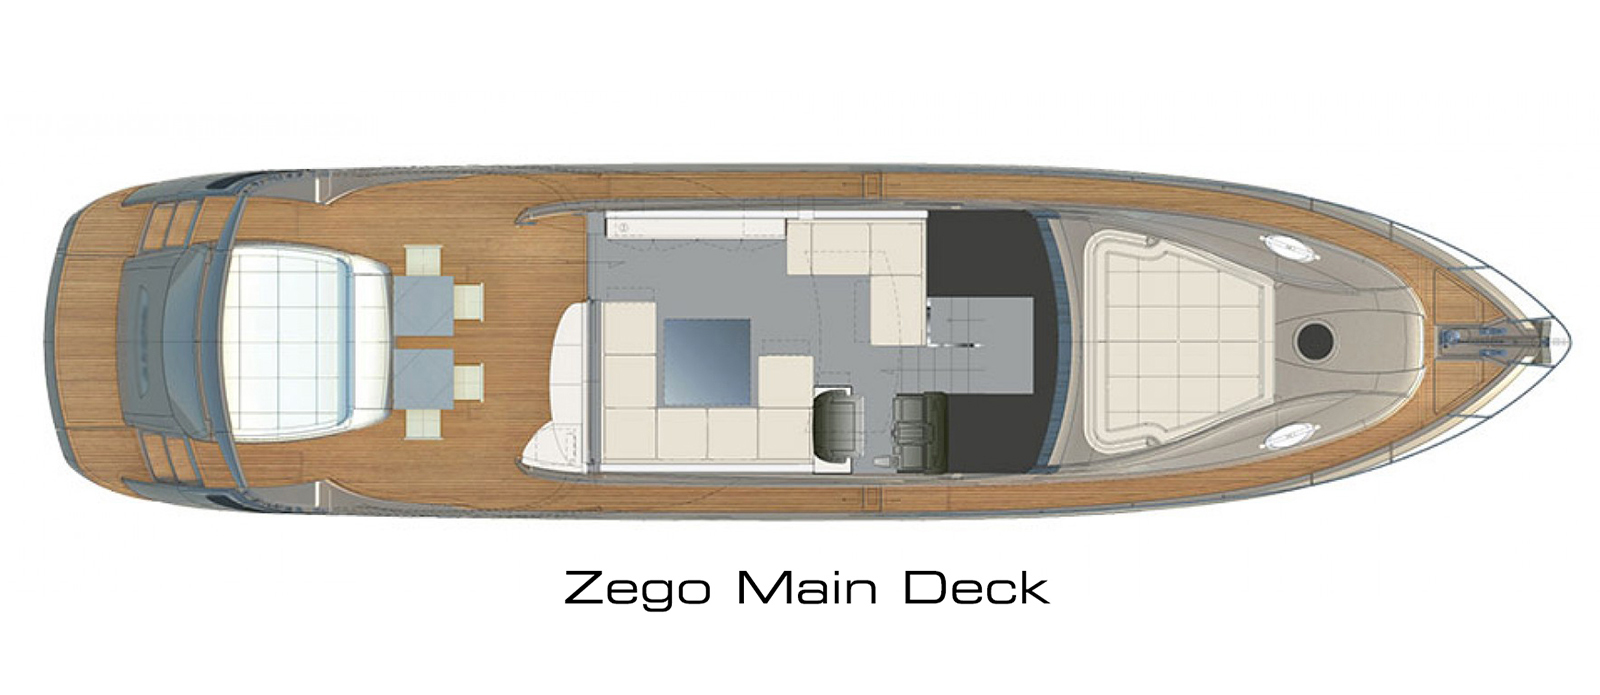 Pershing 70 Main Deck